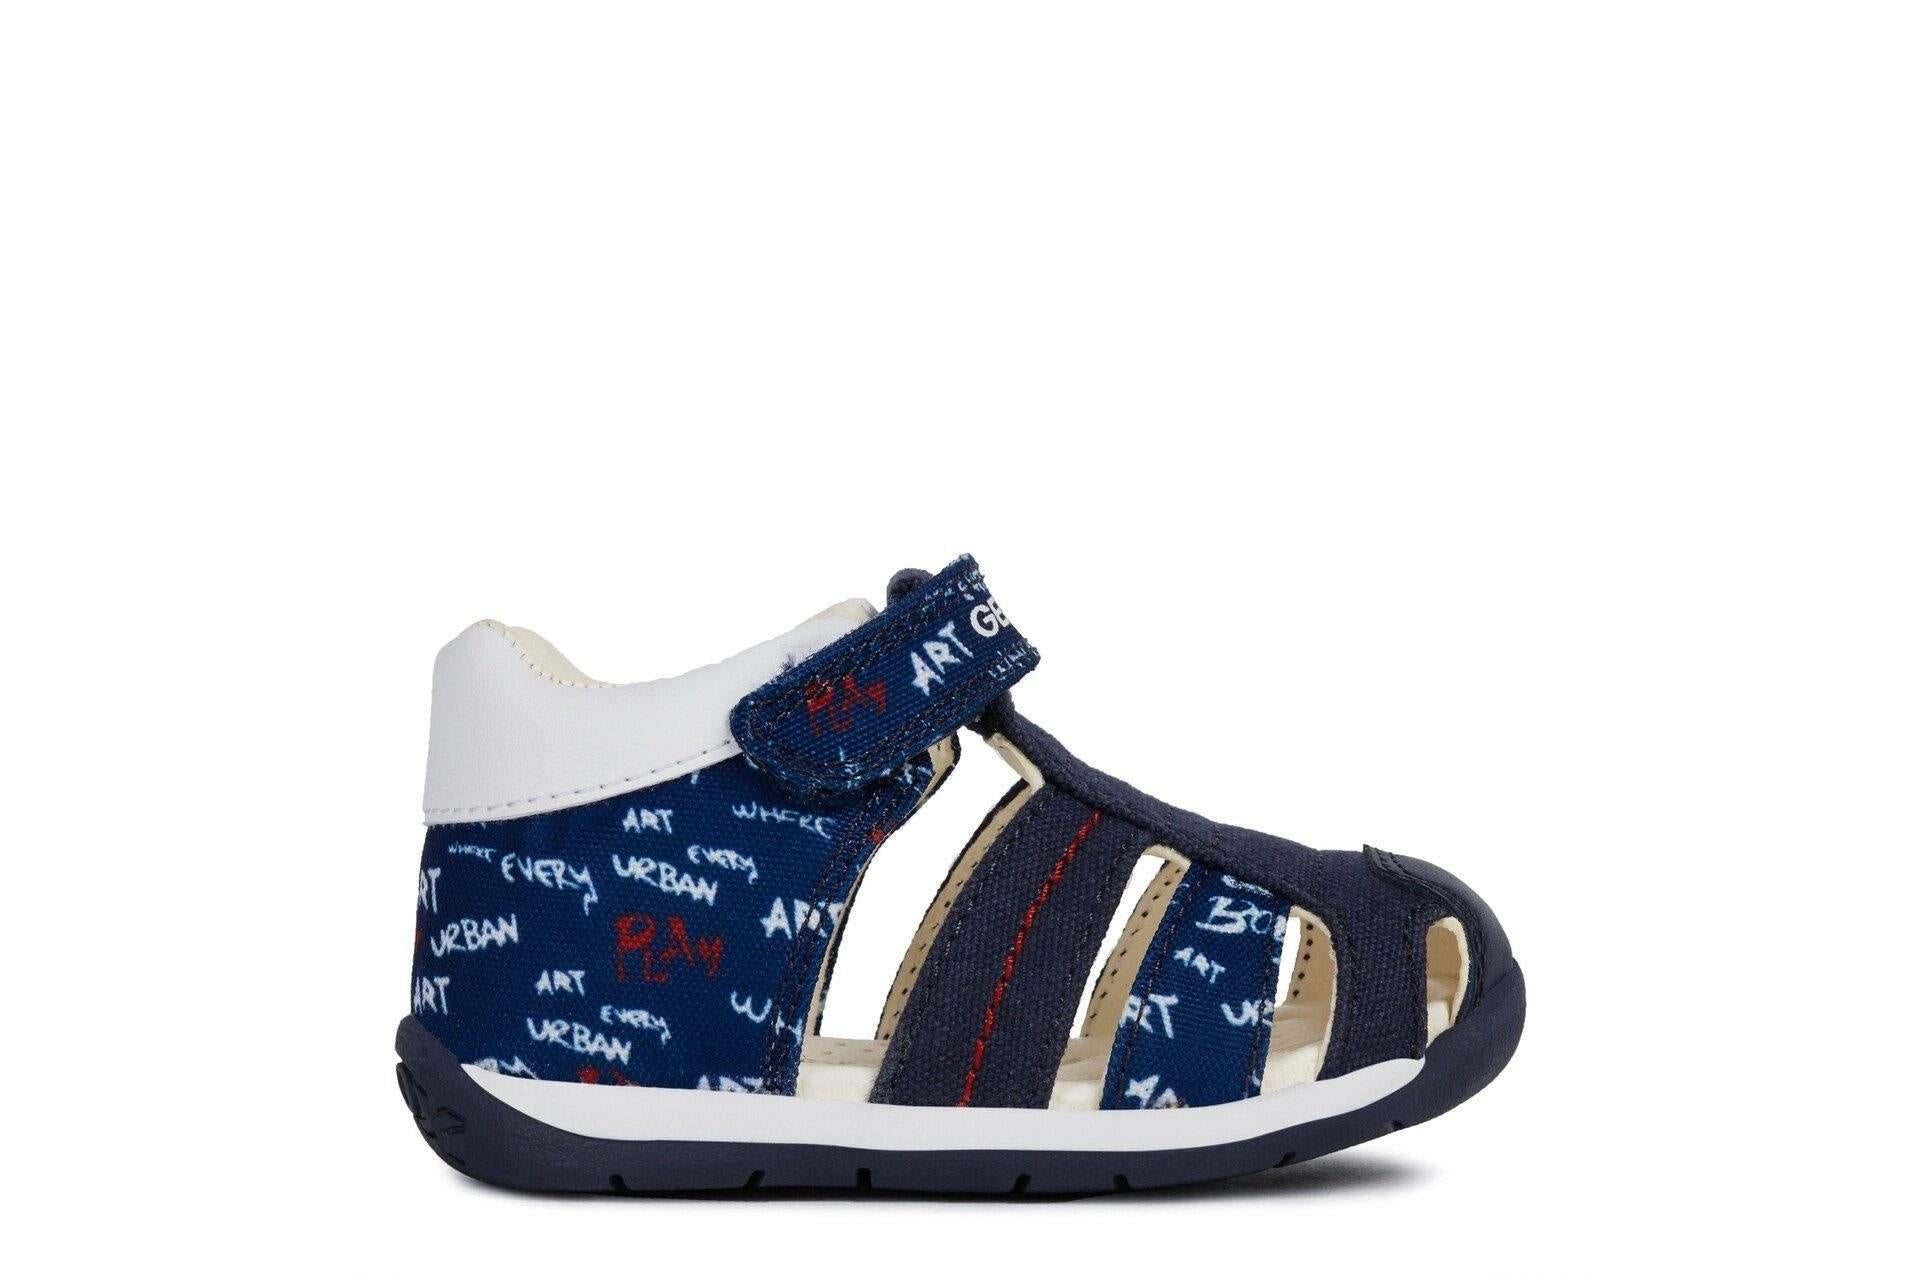 398eb066ea Geox Baby EACH Boys Leather Sandals / Infant / Toddler - shoekid.ca